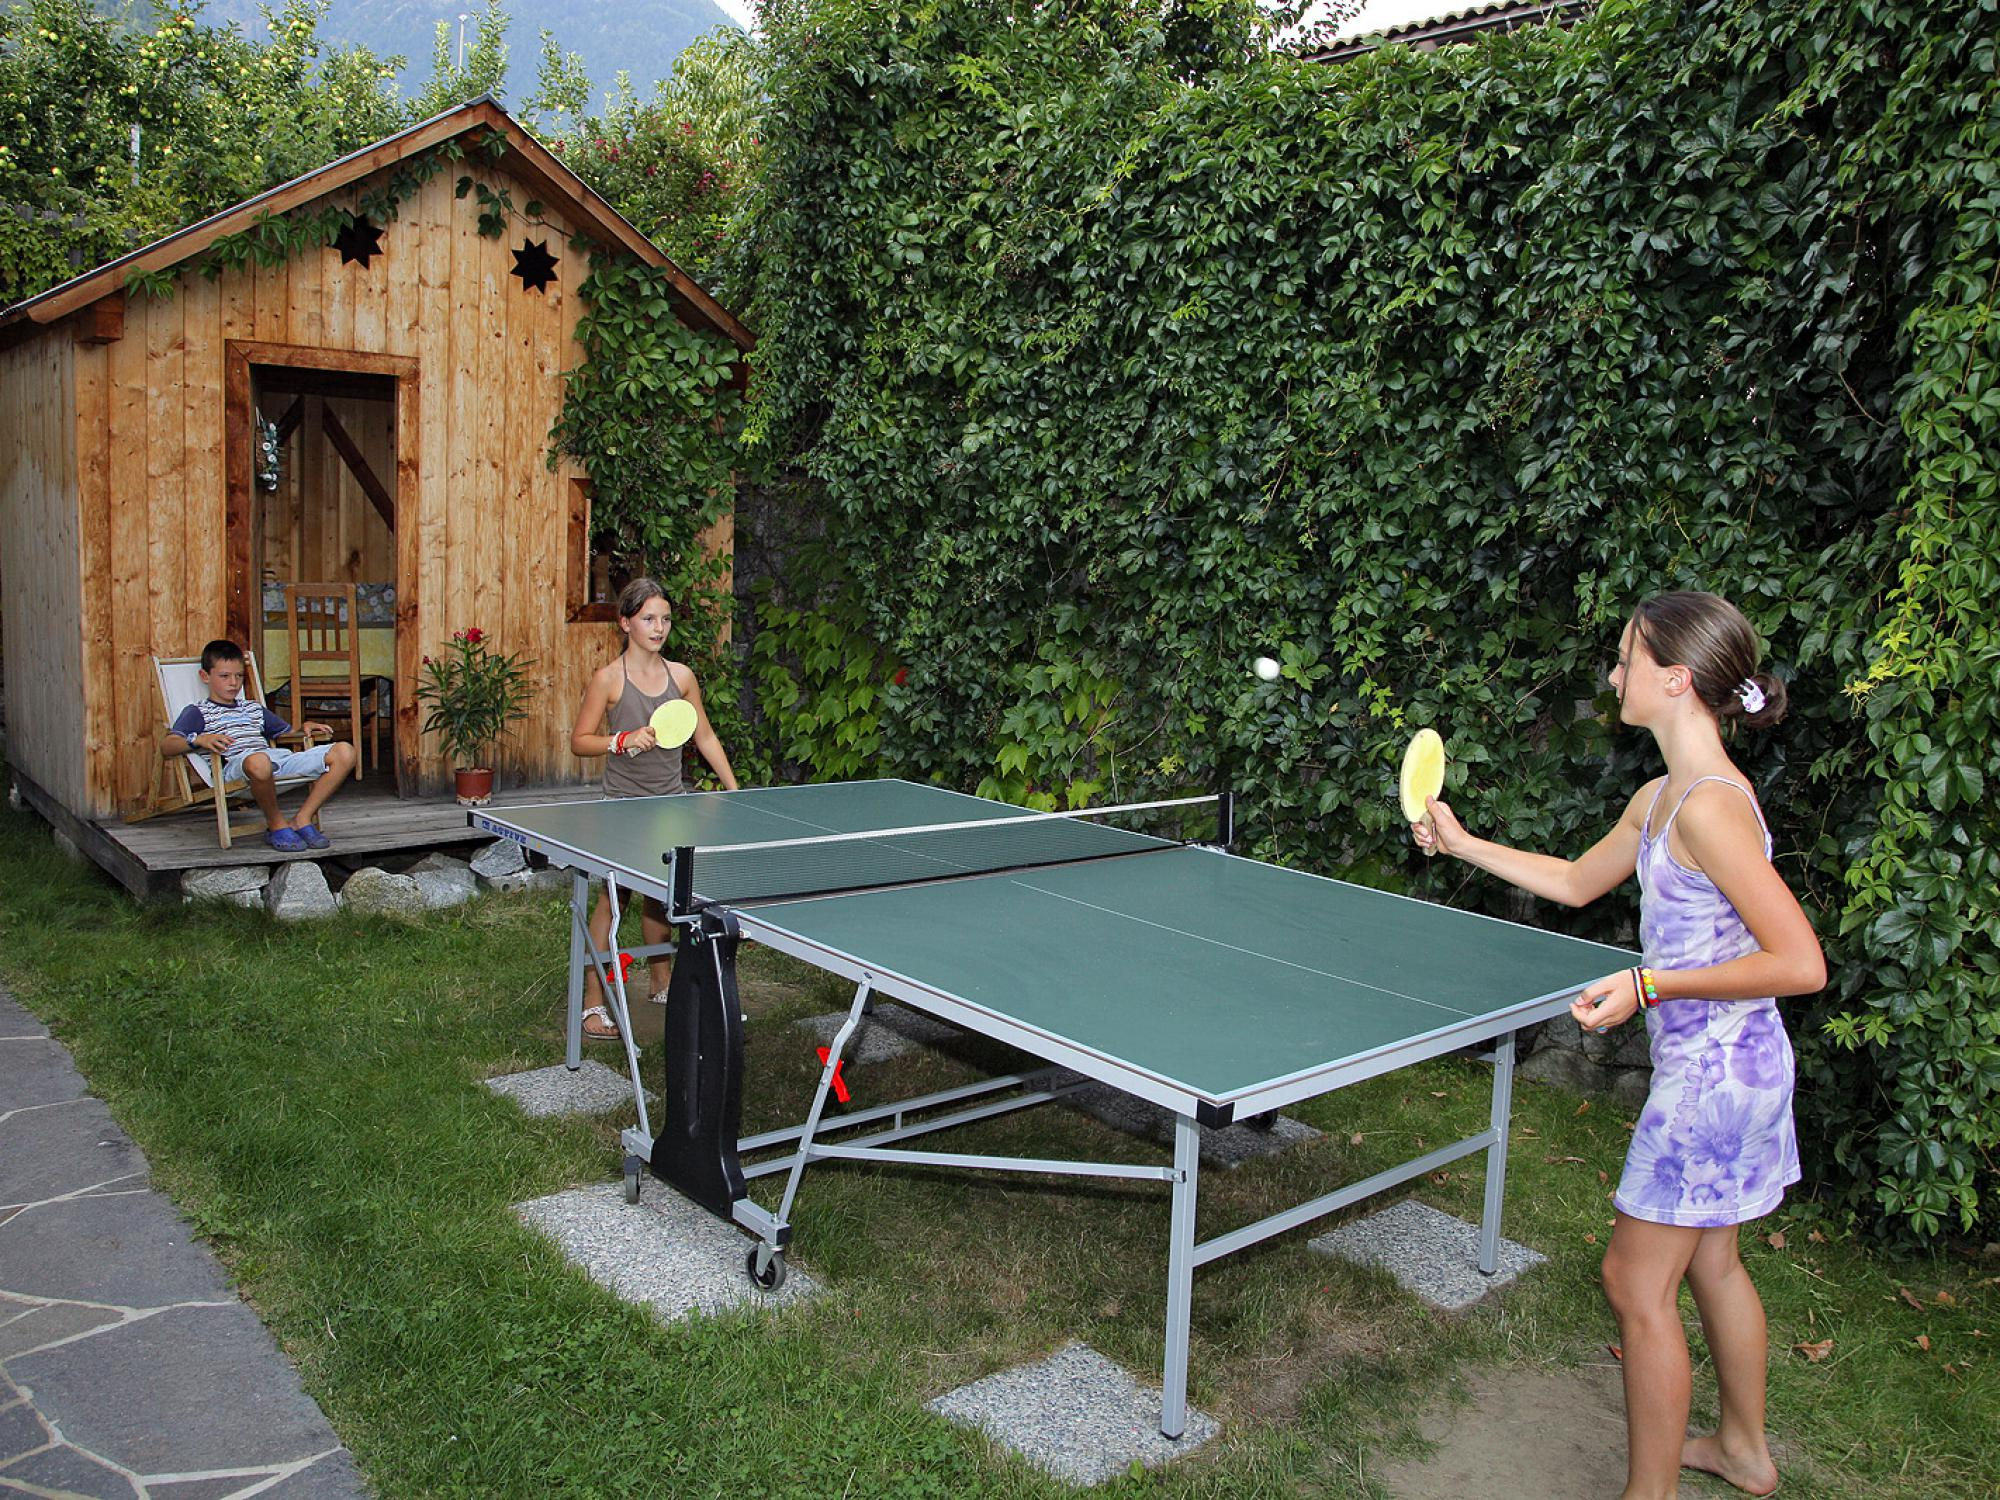 Ping pong fun for everyone, young and old